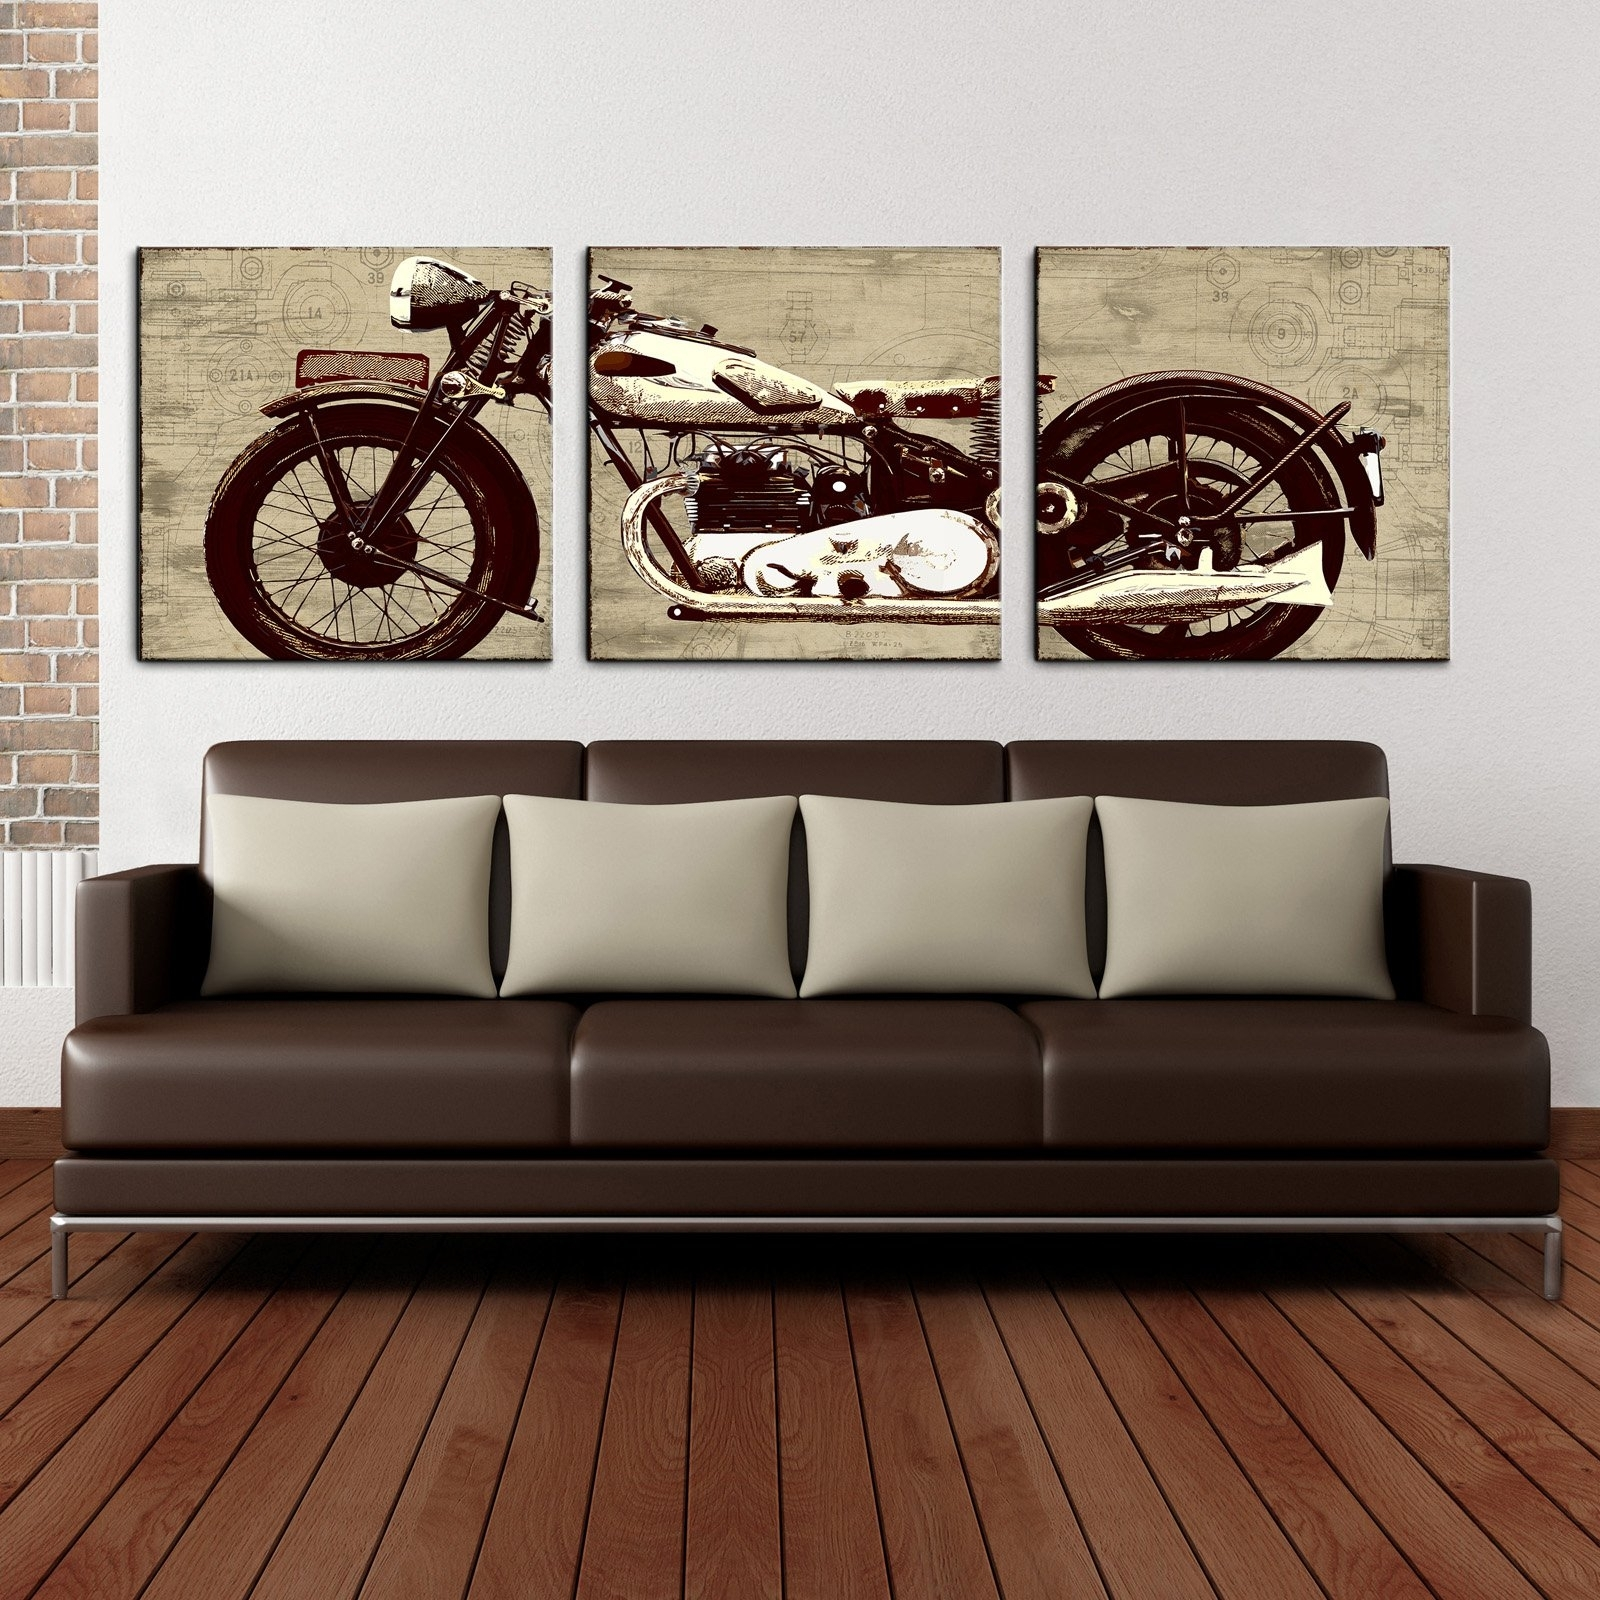 Motorcycle 24 X 72 Canvas Art Print Triptych – Walmart With Regard To Newest Motorcycle Wall Art (Gallery 8 of 20)